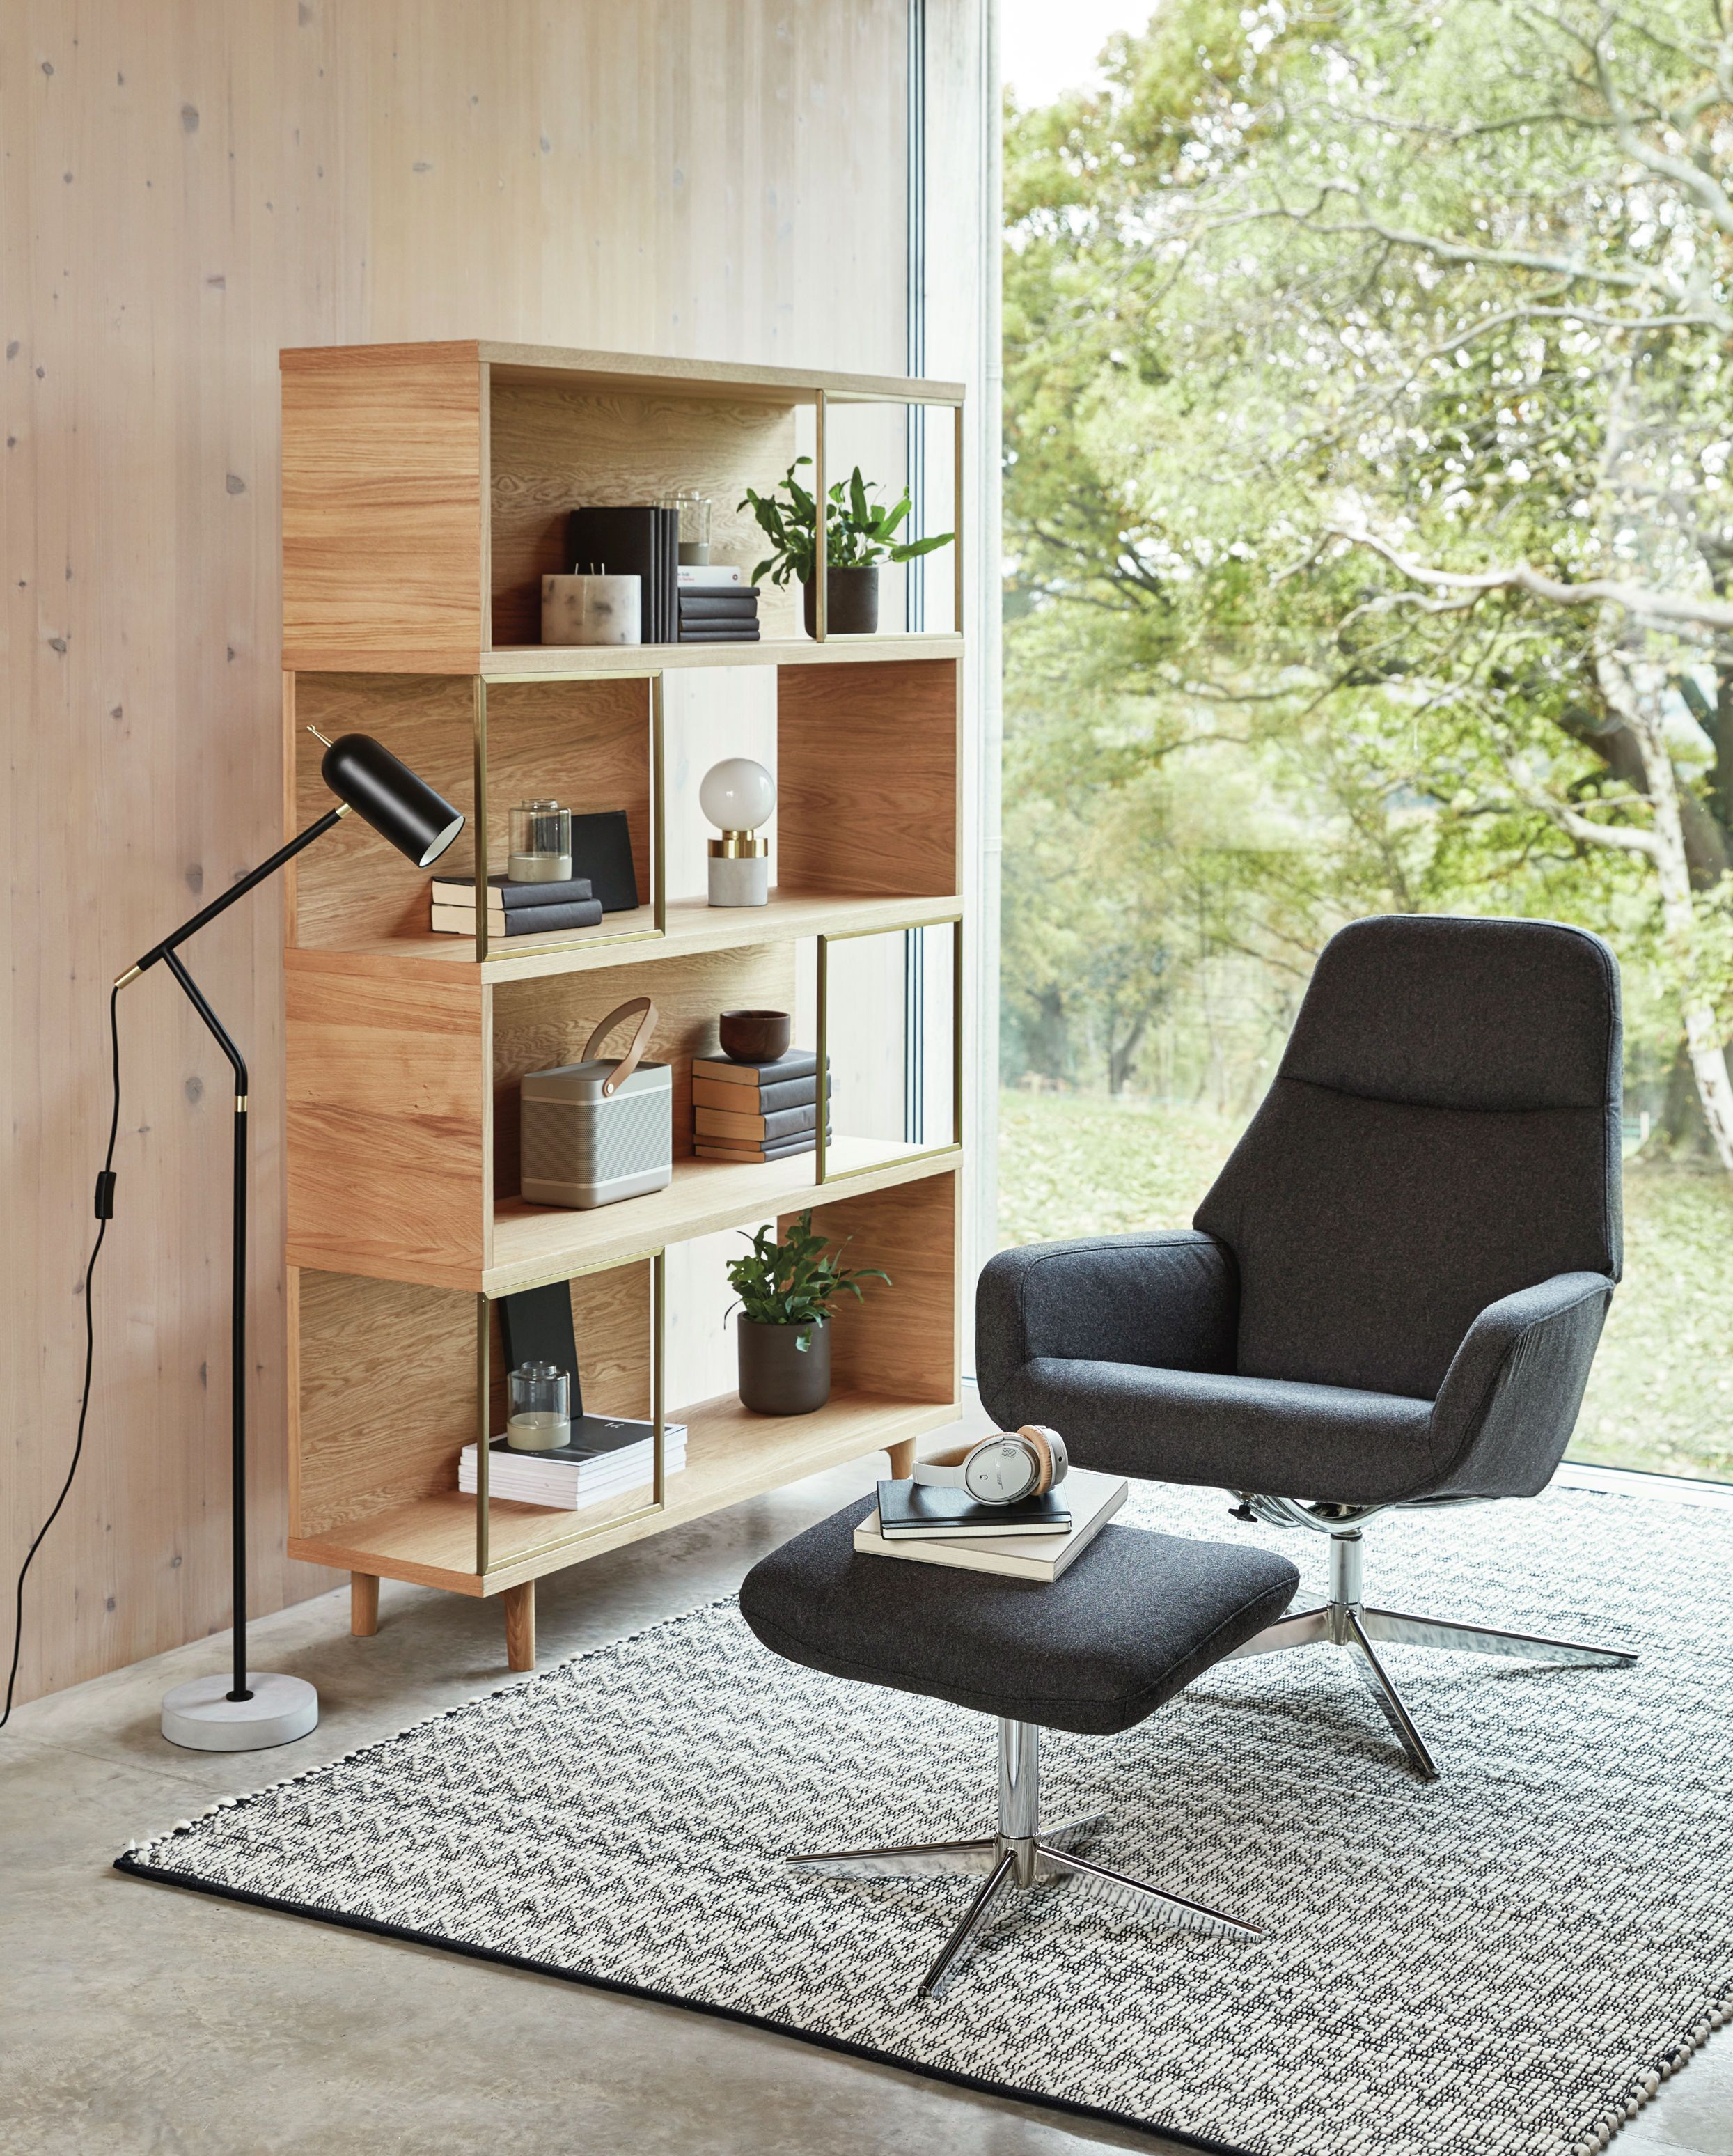 Design Project by John Lewis No.004 Display Unit, Oak - bookcase, bookshelf